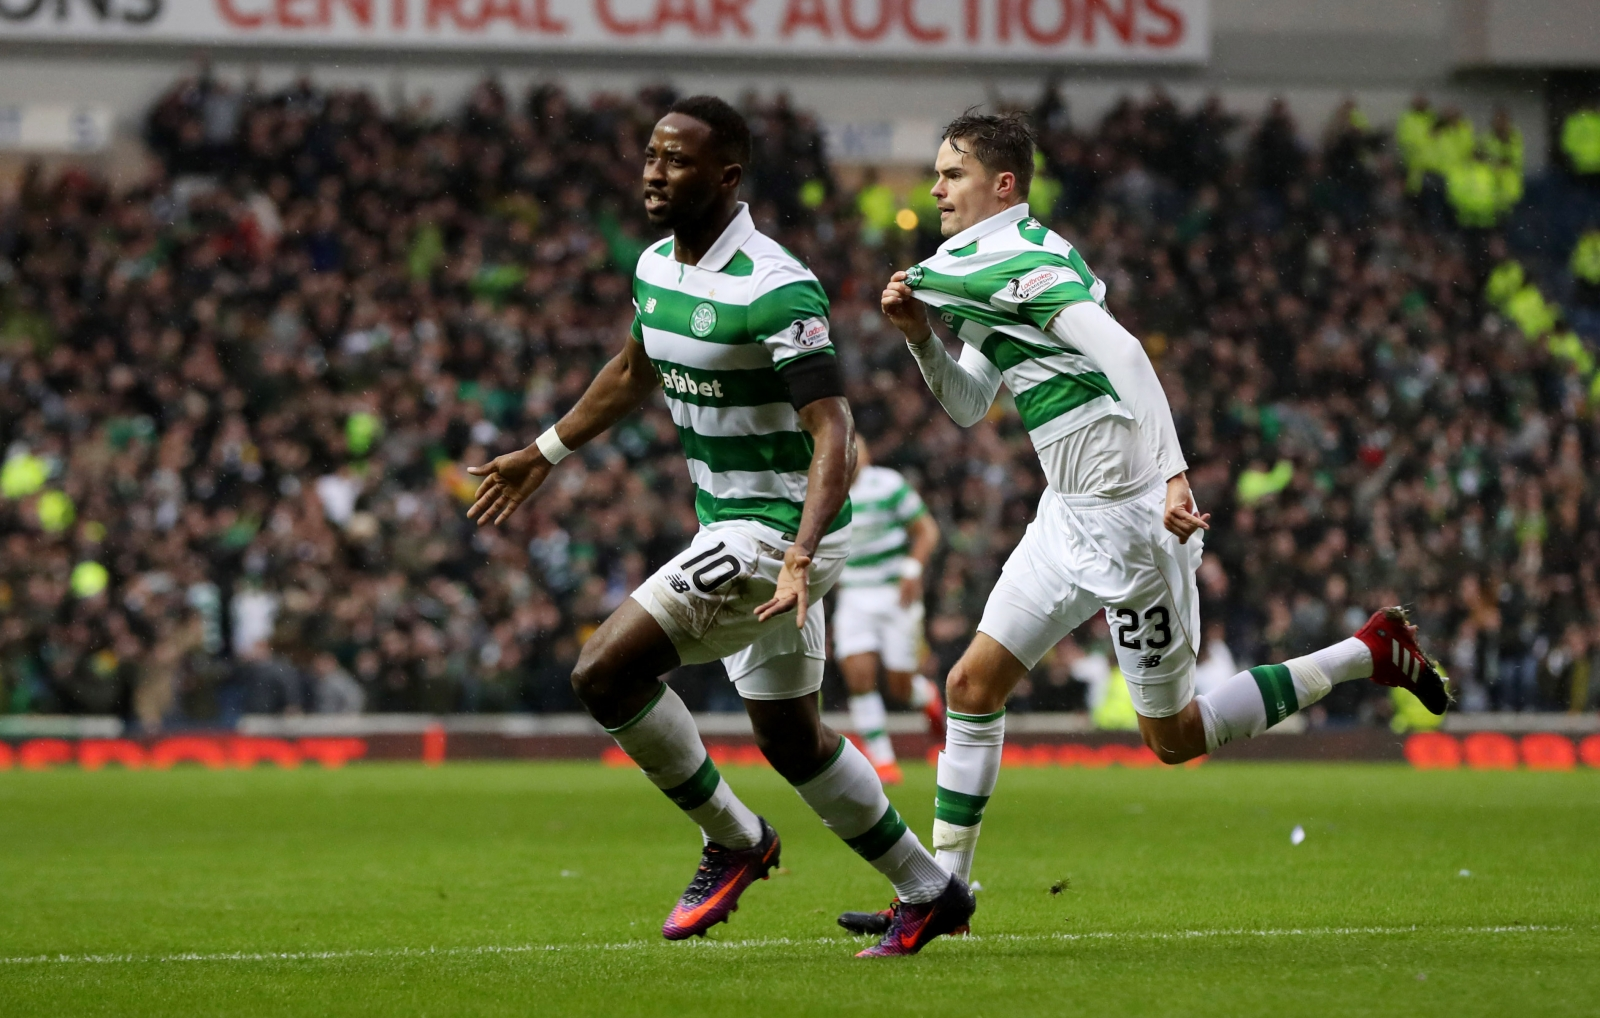 Everton considered signing Celtic forward Moussa Dembele in the summer